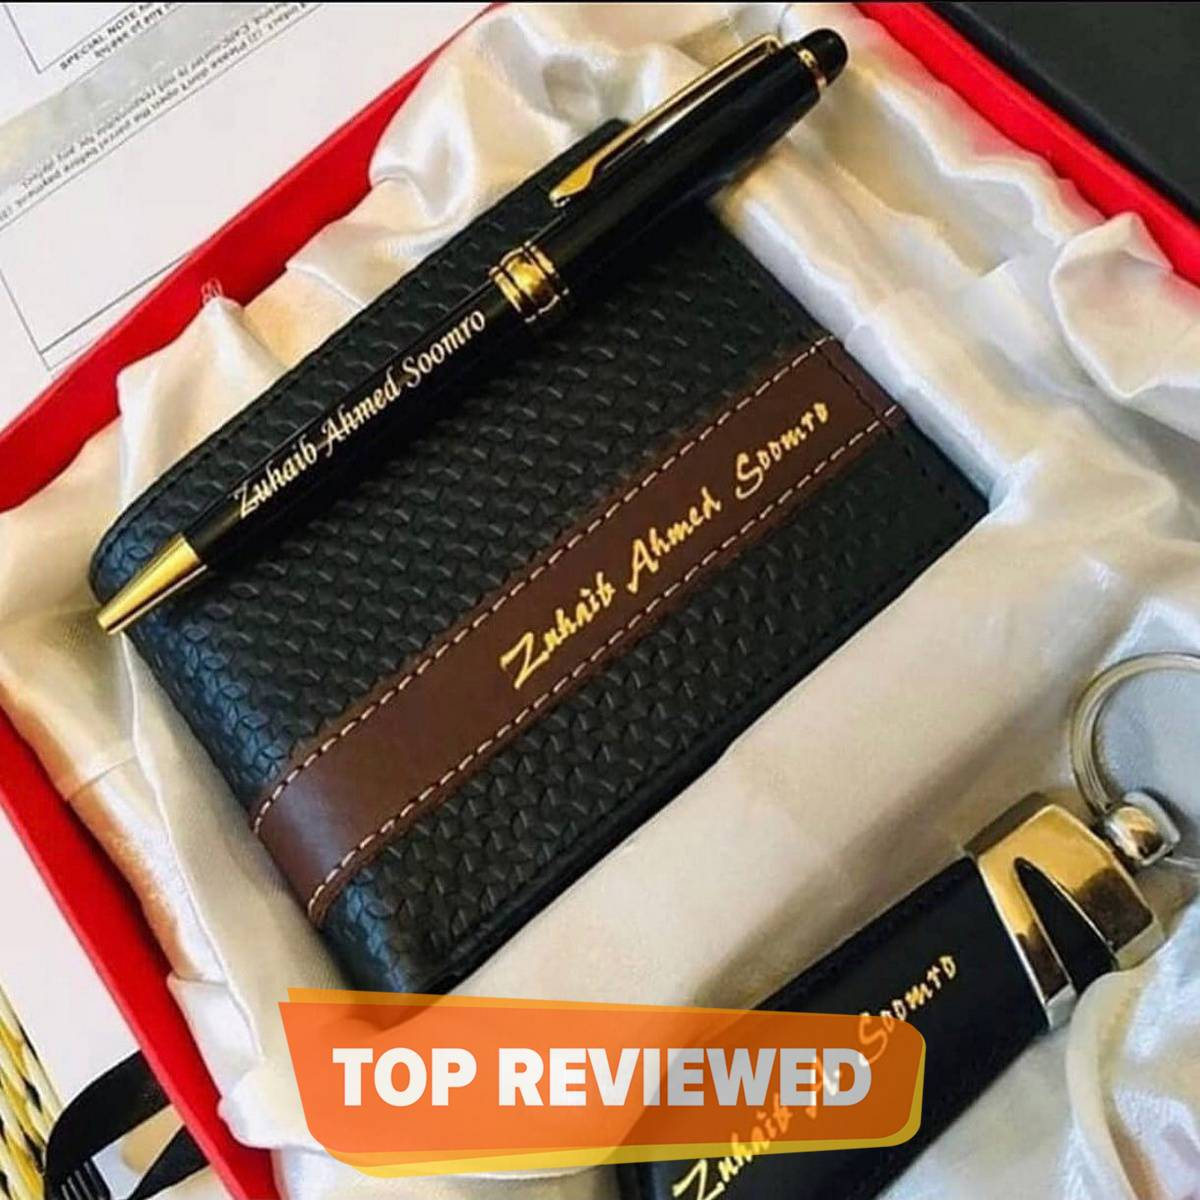 High Quality Customize Wallet, Keychain And Pen Name Engrave For Men With Gift Box Packing